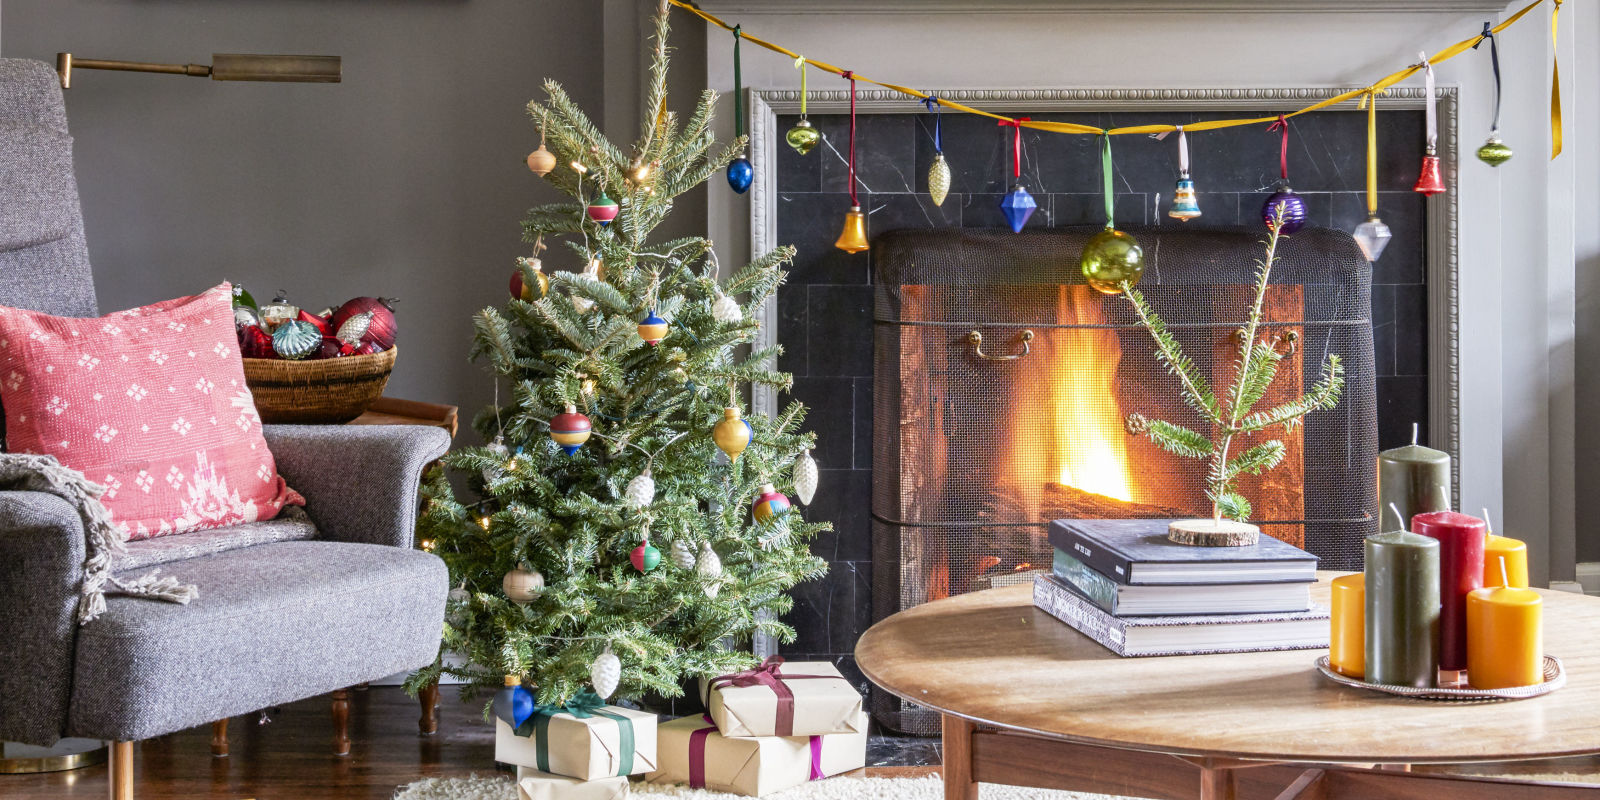 This festive home redefines cozy chic how to decorate